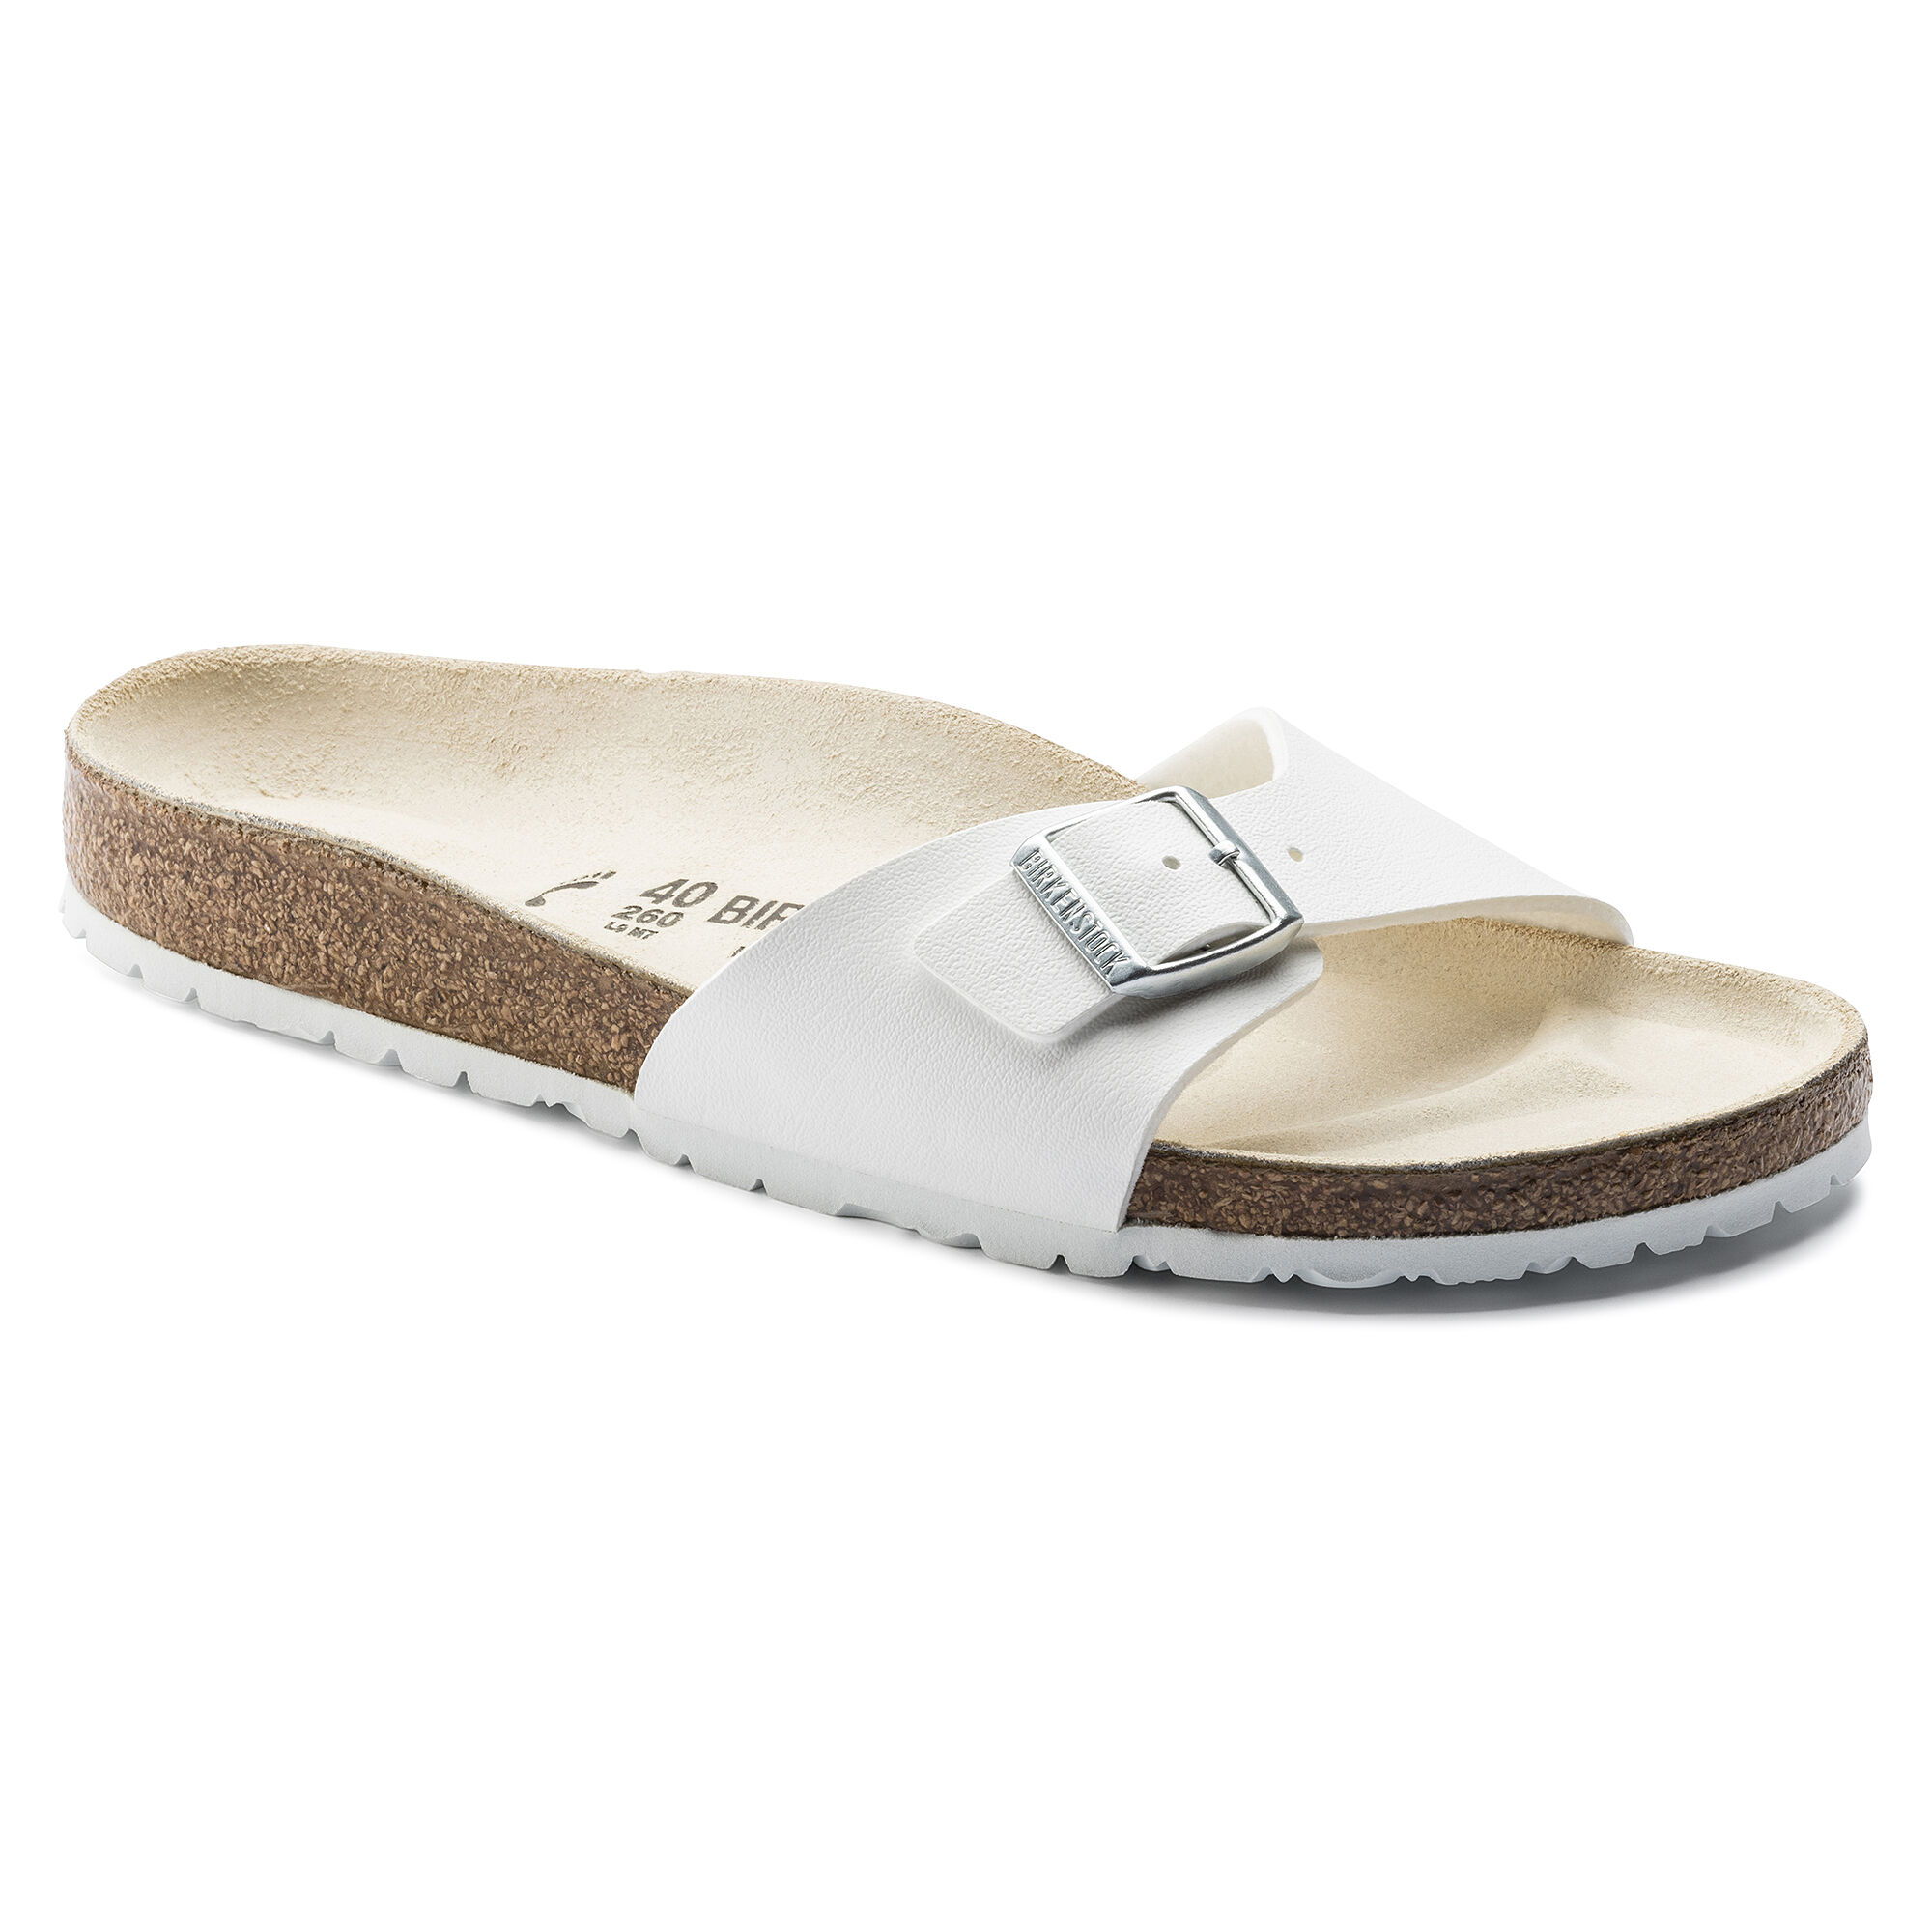 Newest Birkenstock Madrid Flor W White Womens Mules & Clogs Outlet UK1101